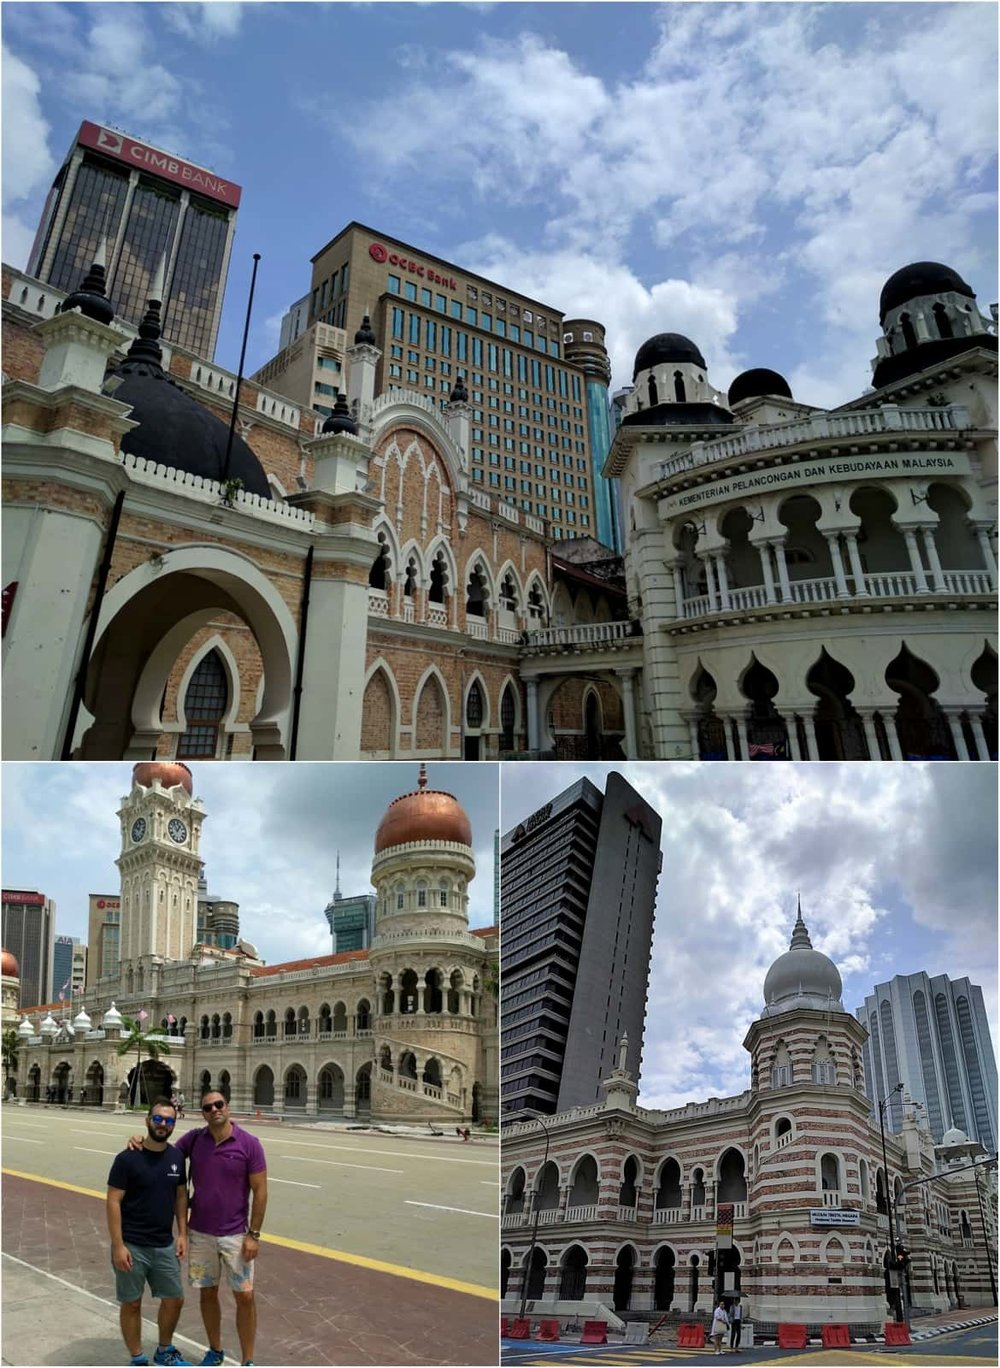 Beautiful architecture at Merdeka Square in KL